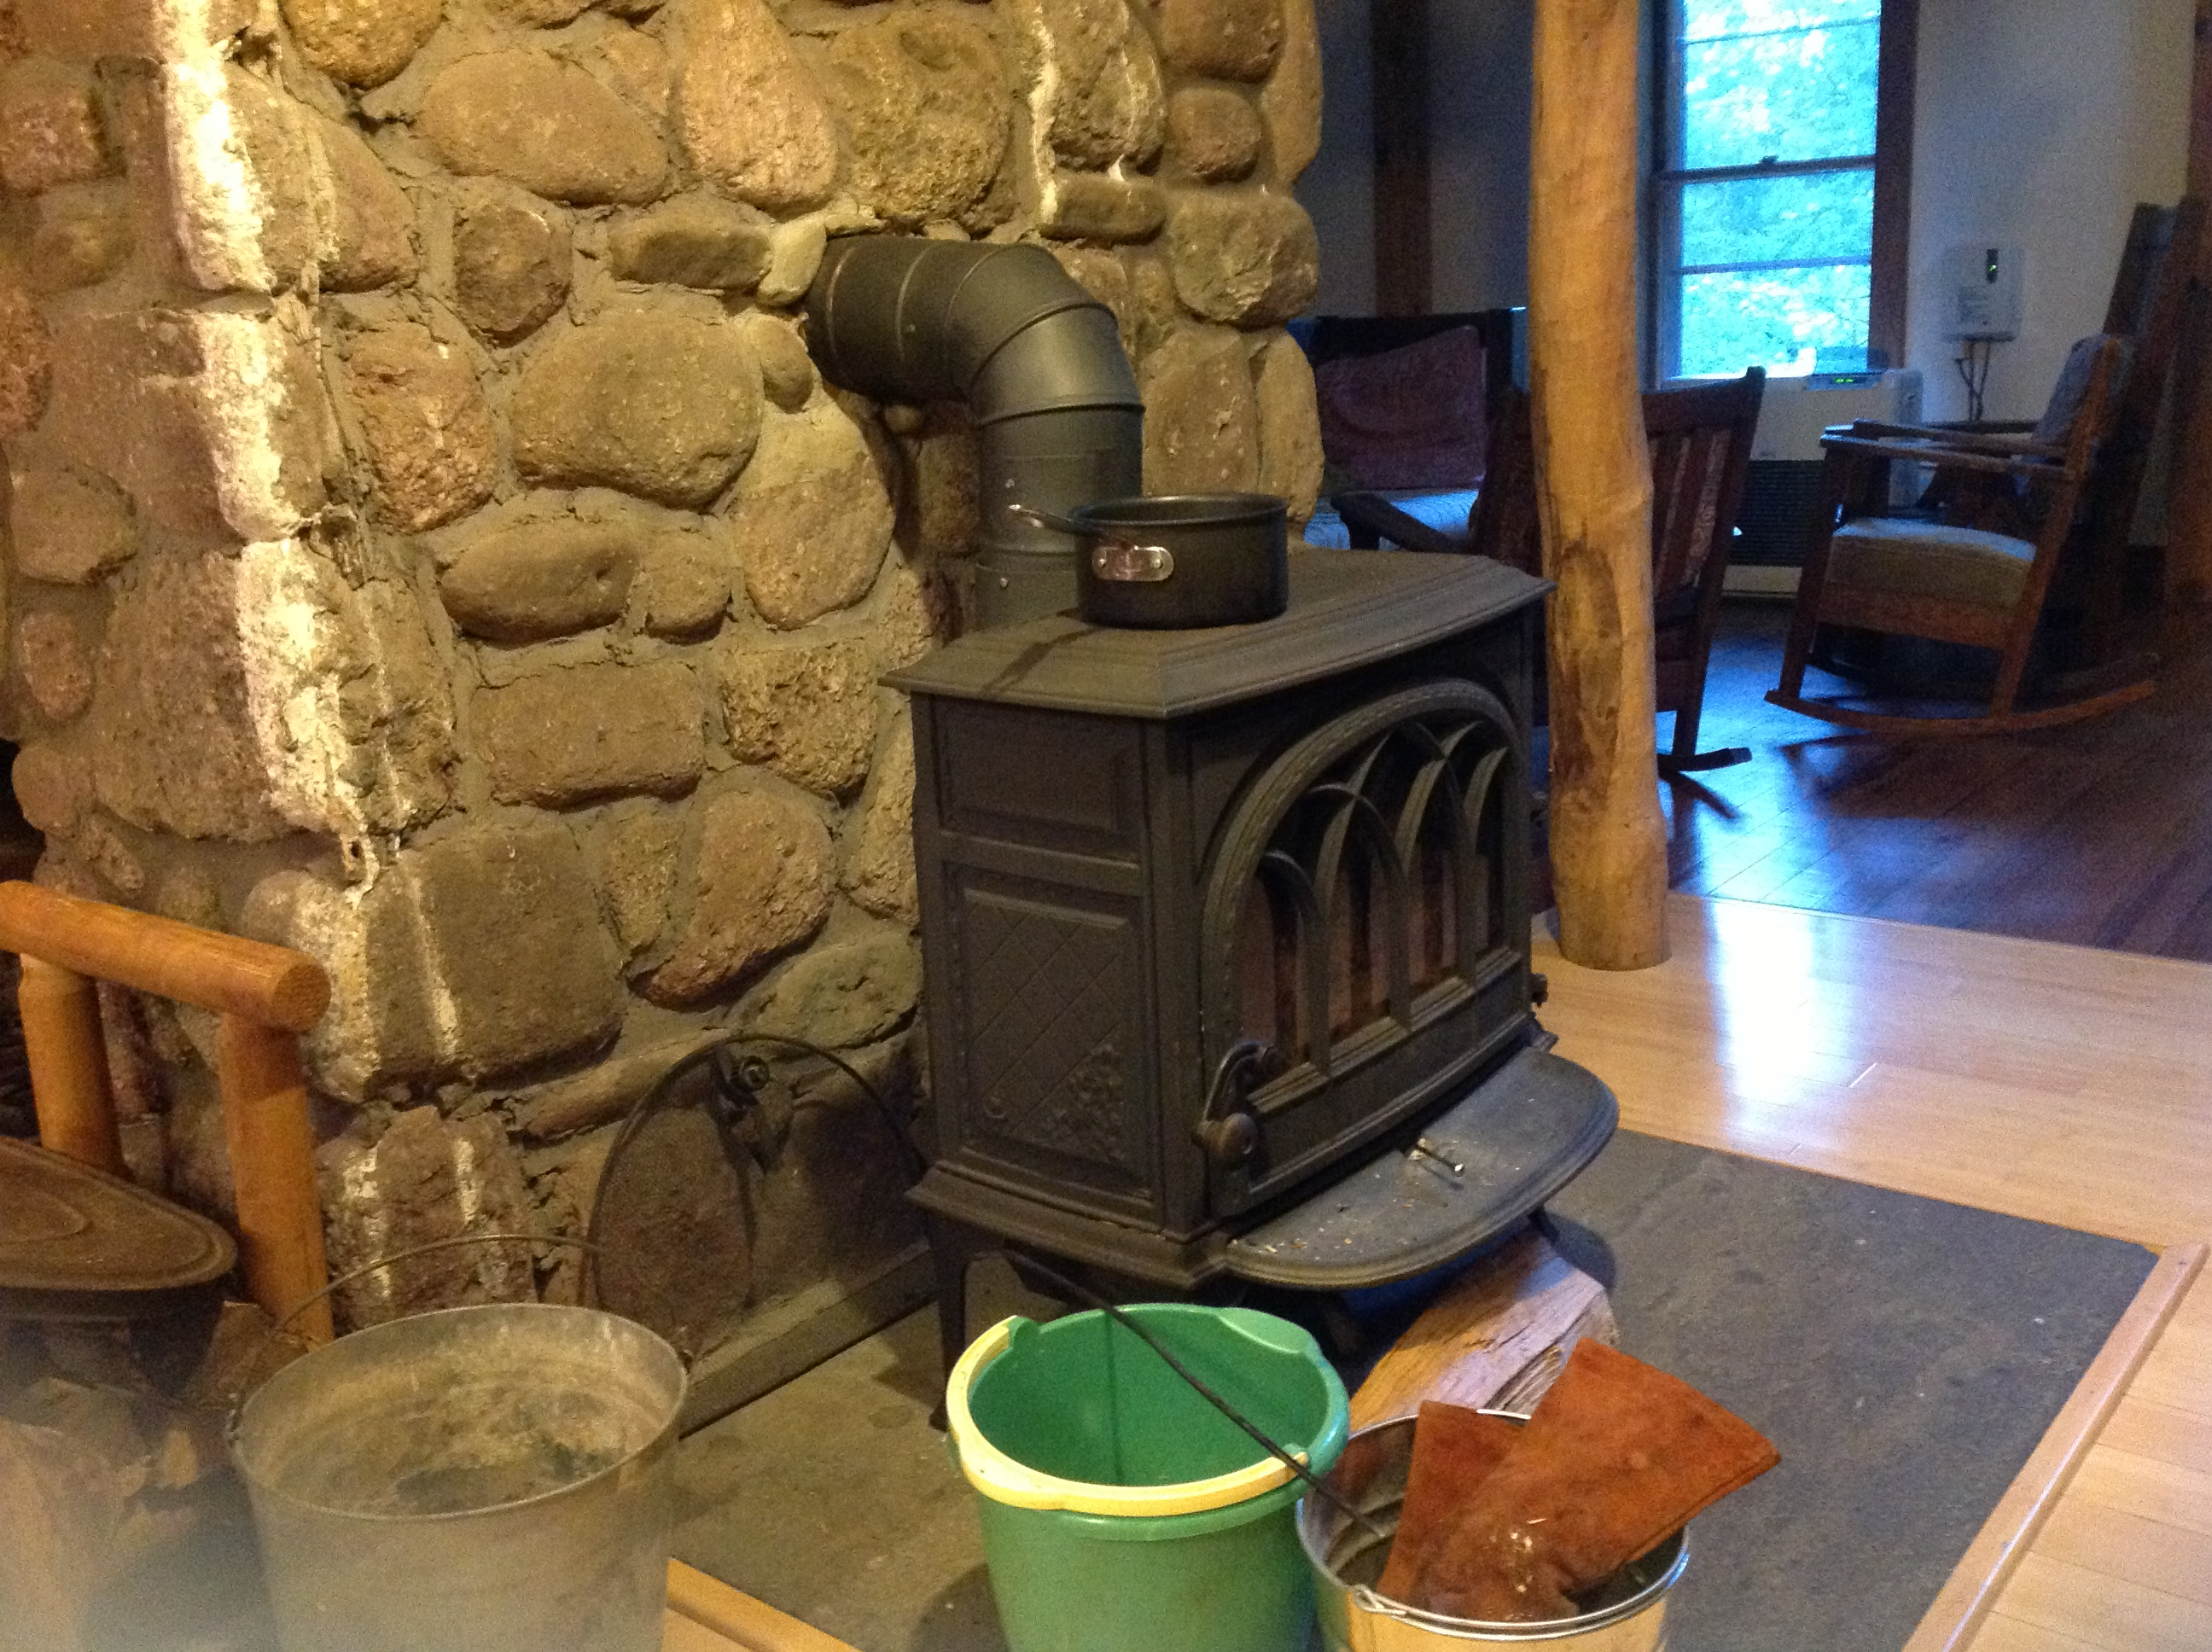 The best way to Take Out of At-Port Pipe to get a Pellet Stove